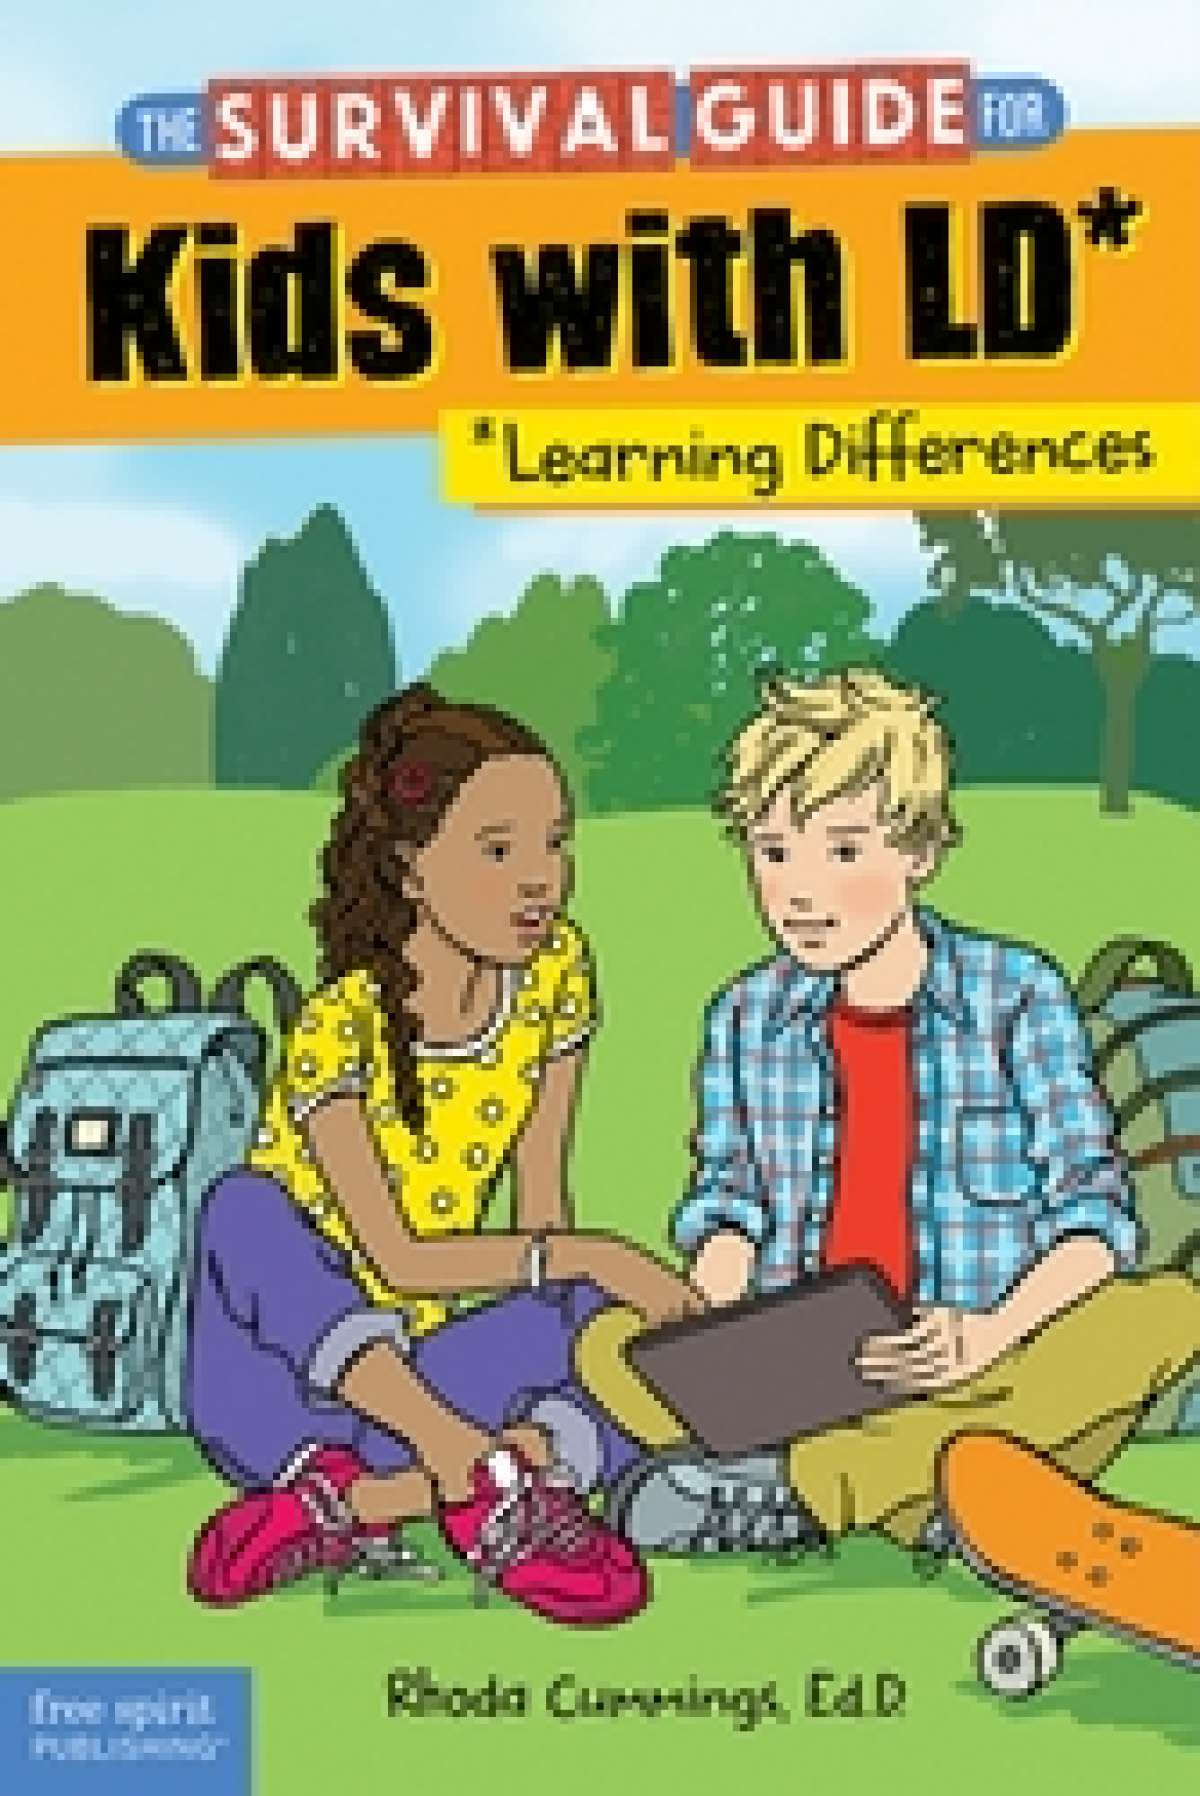 Survival Guide for Kids with LD